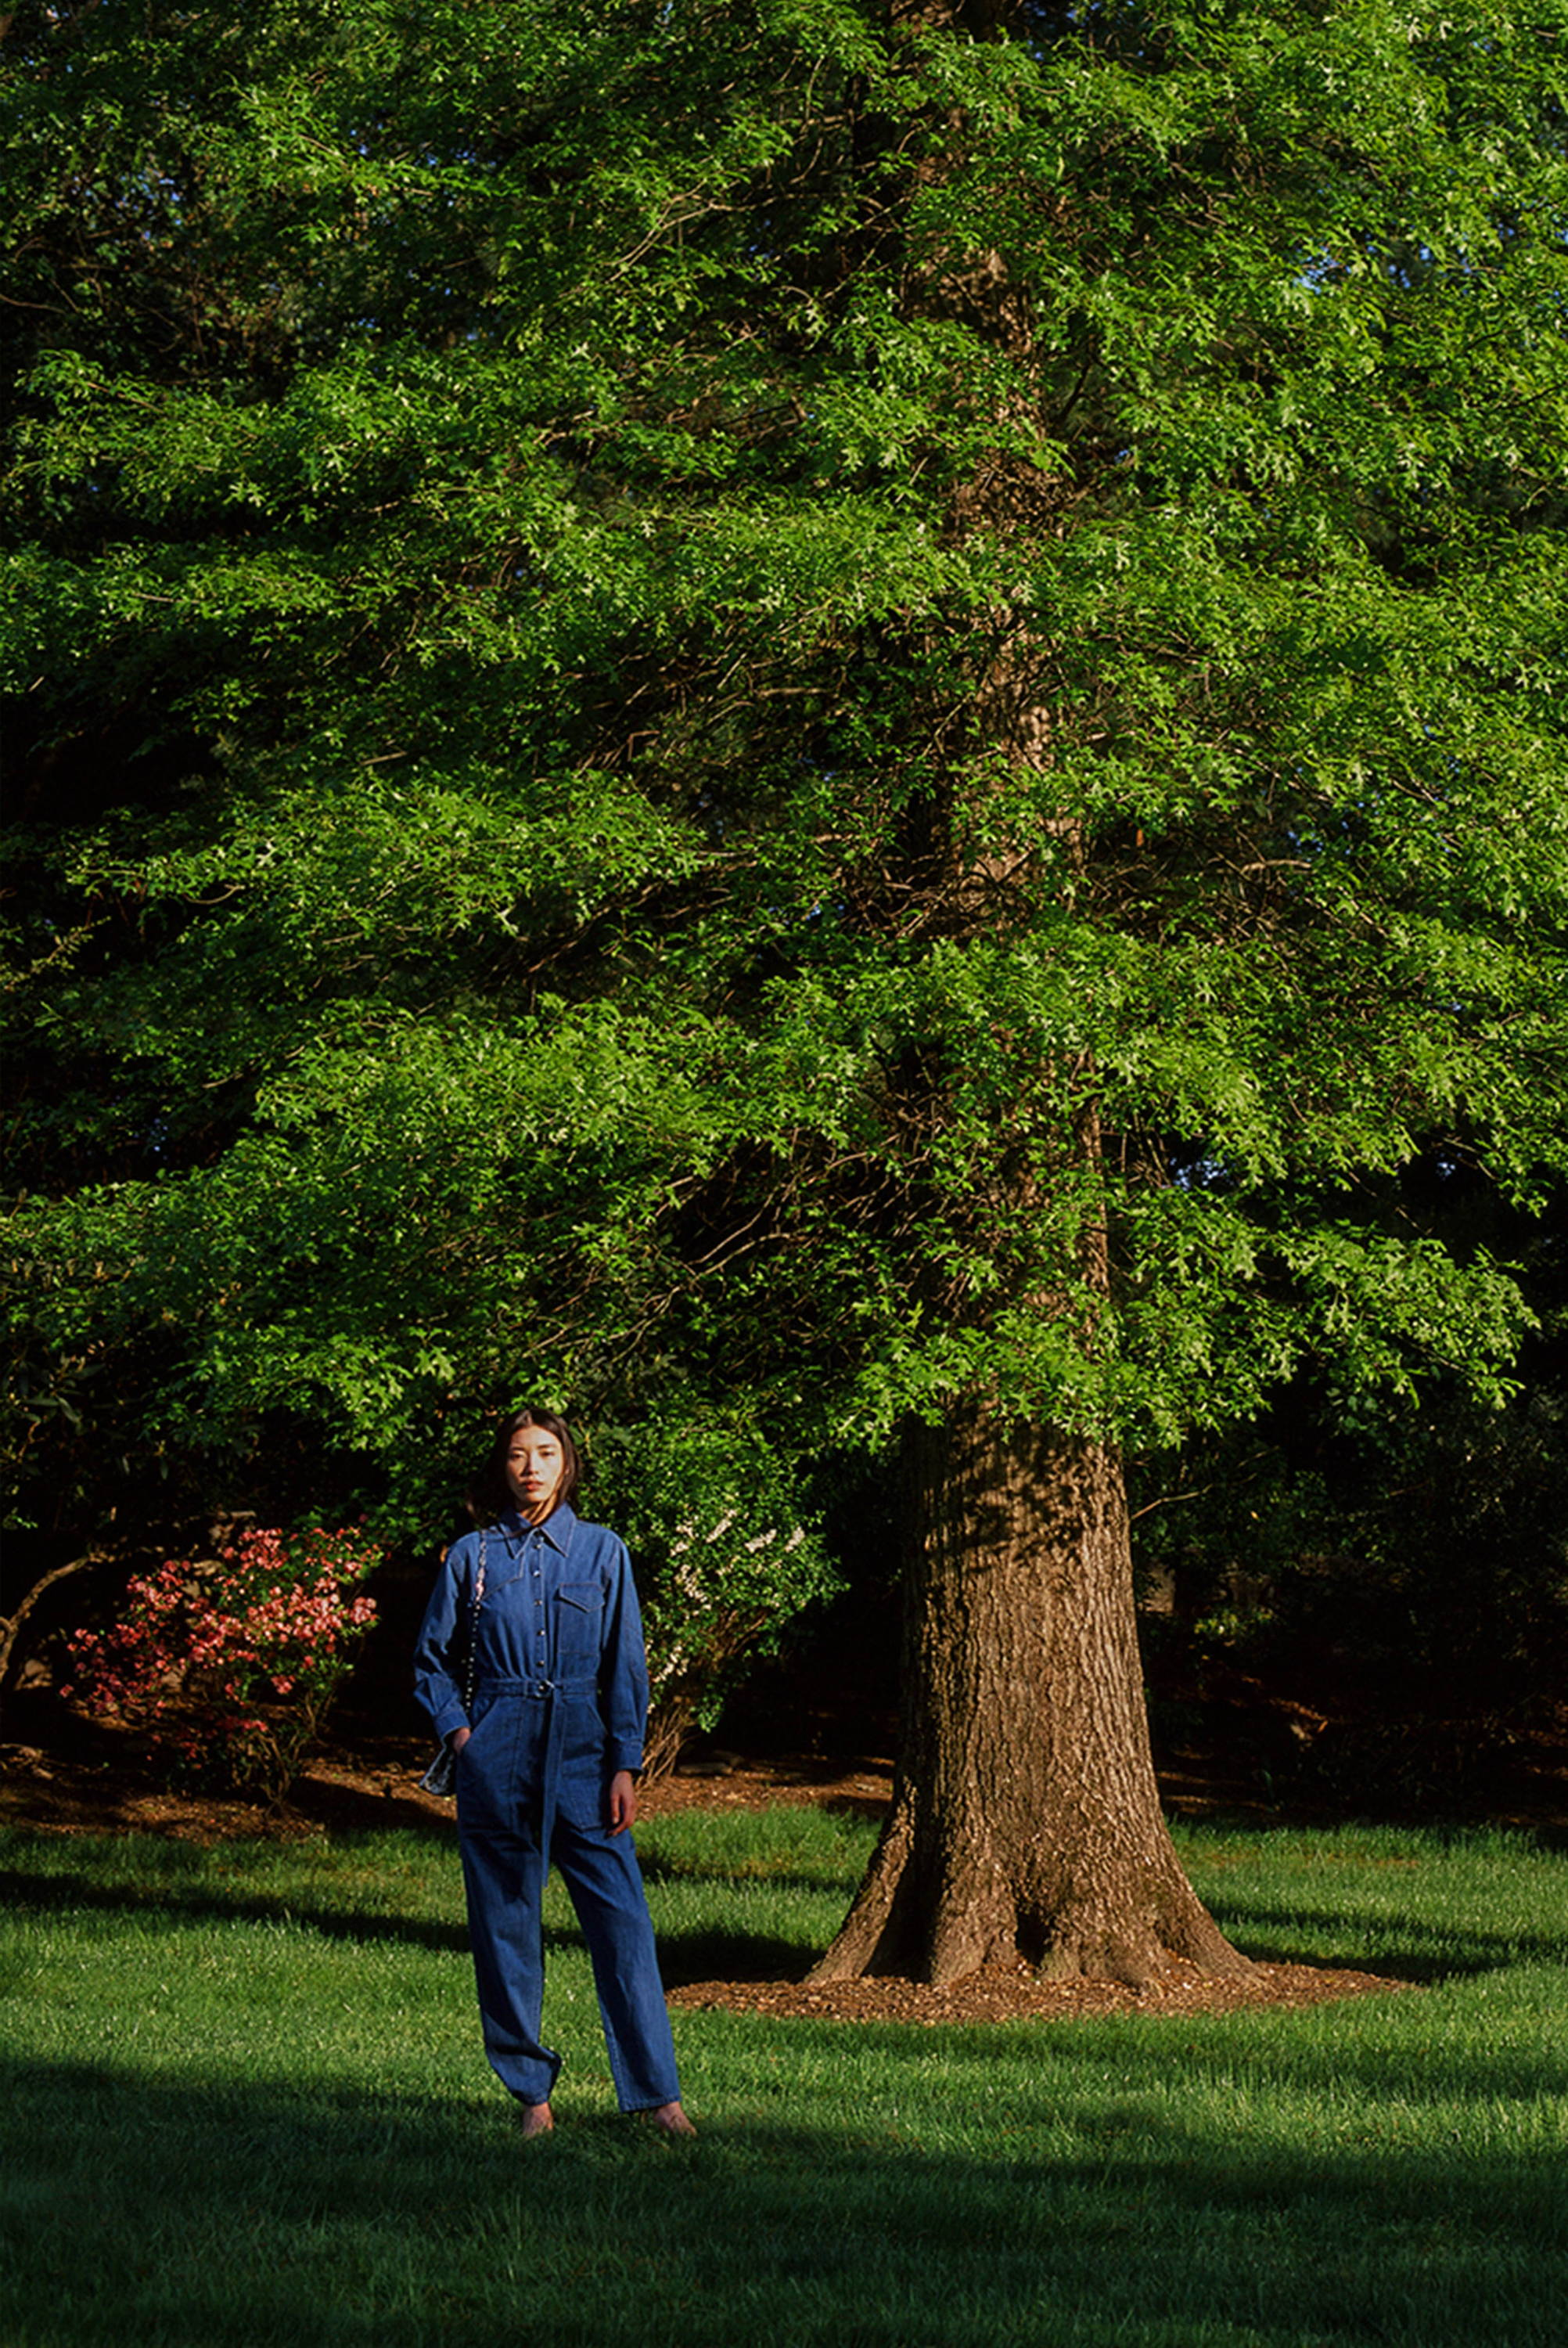 Model standing under tree wearing all denim outfit.